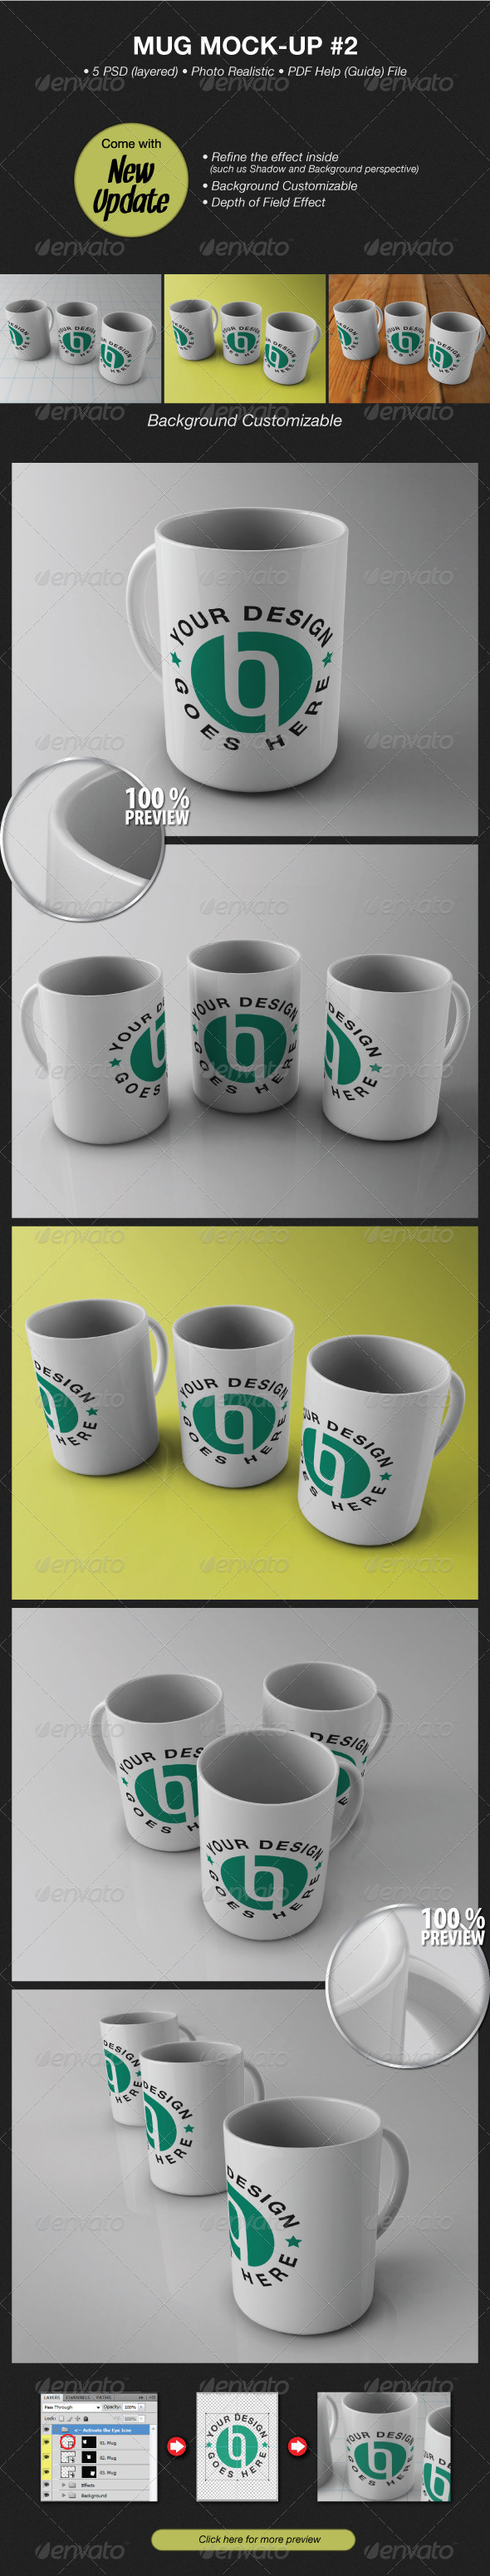 Mug Mockup #2 - Food and Drink Packaging